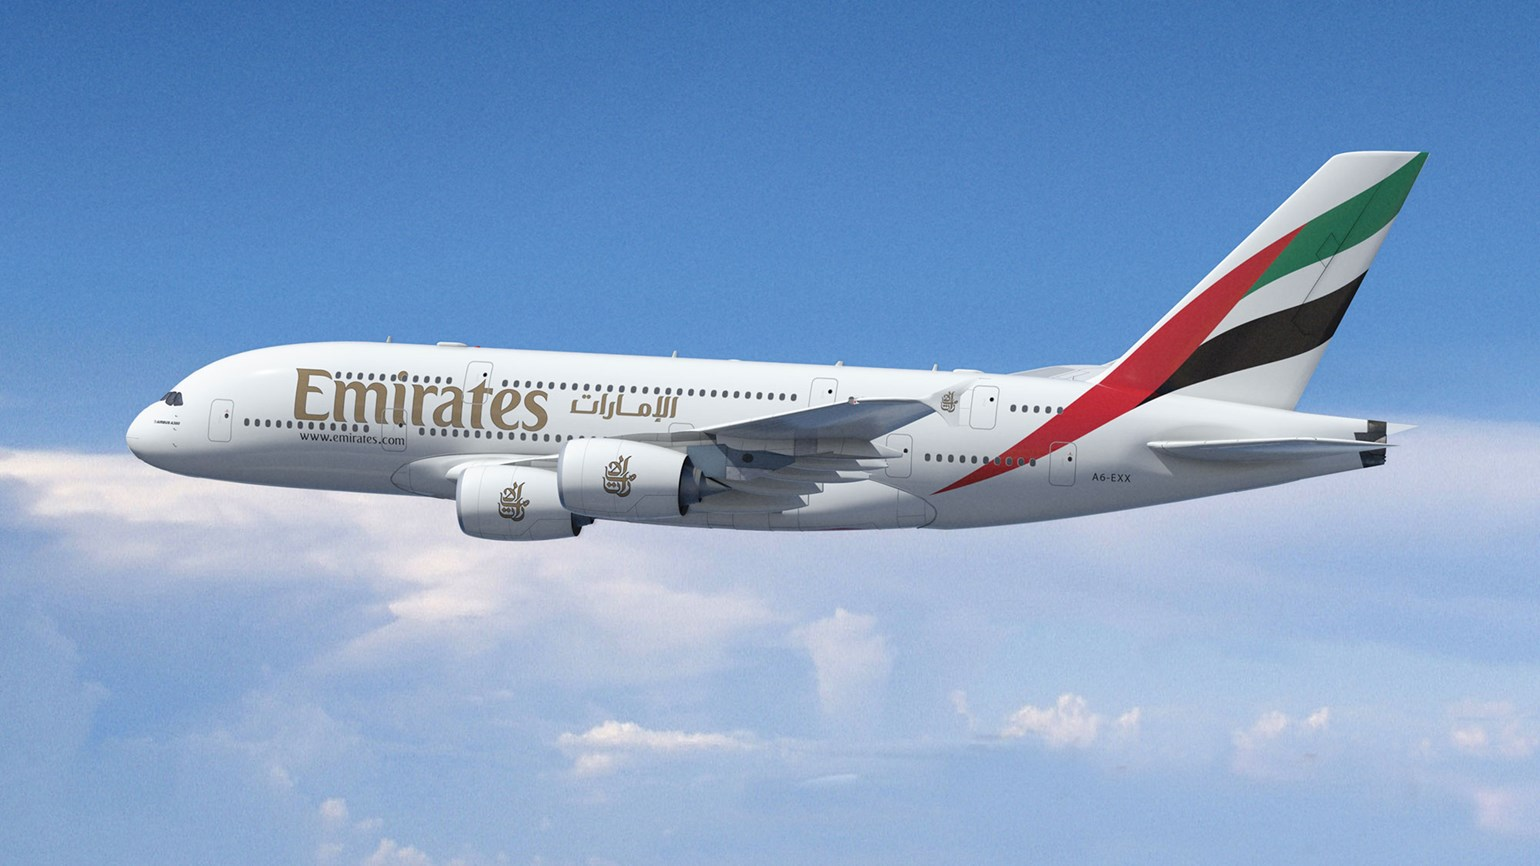 T0122EMIRATESA380_HR.JPG